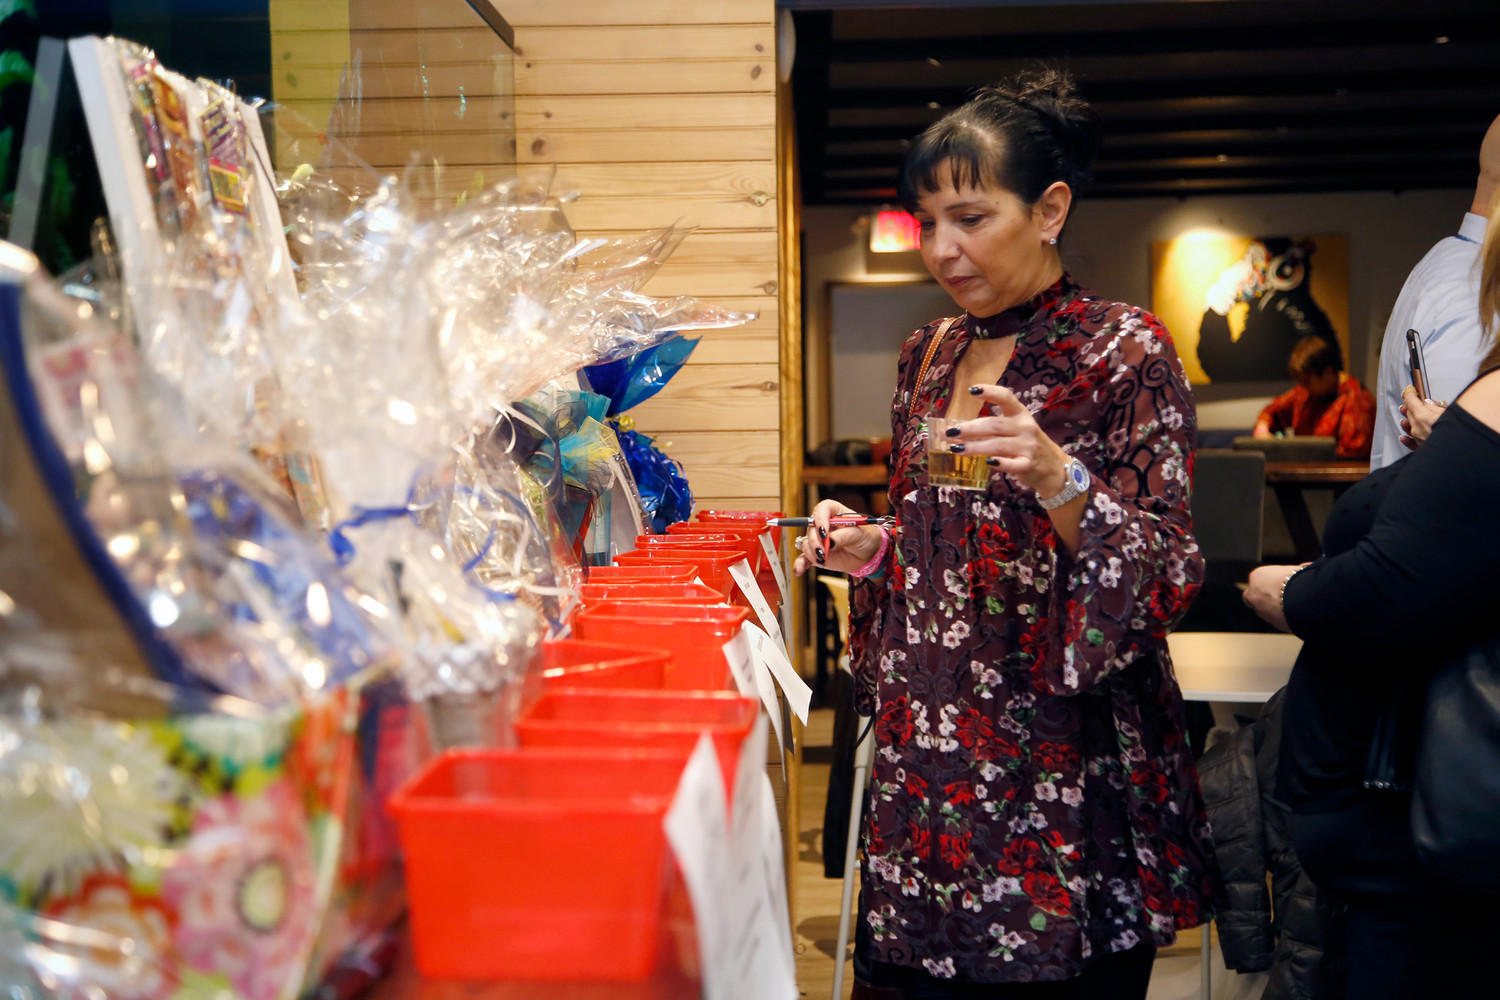 Cathy Acquavella browsed the raffle baskets.